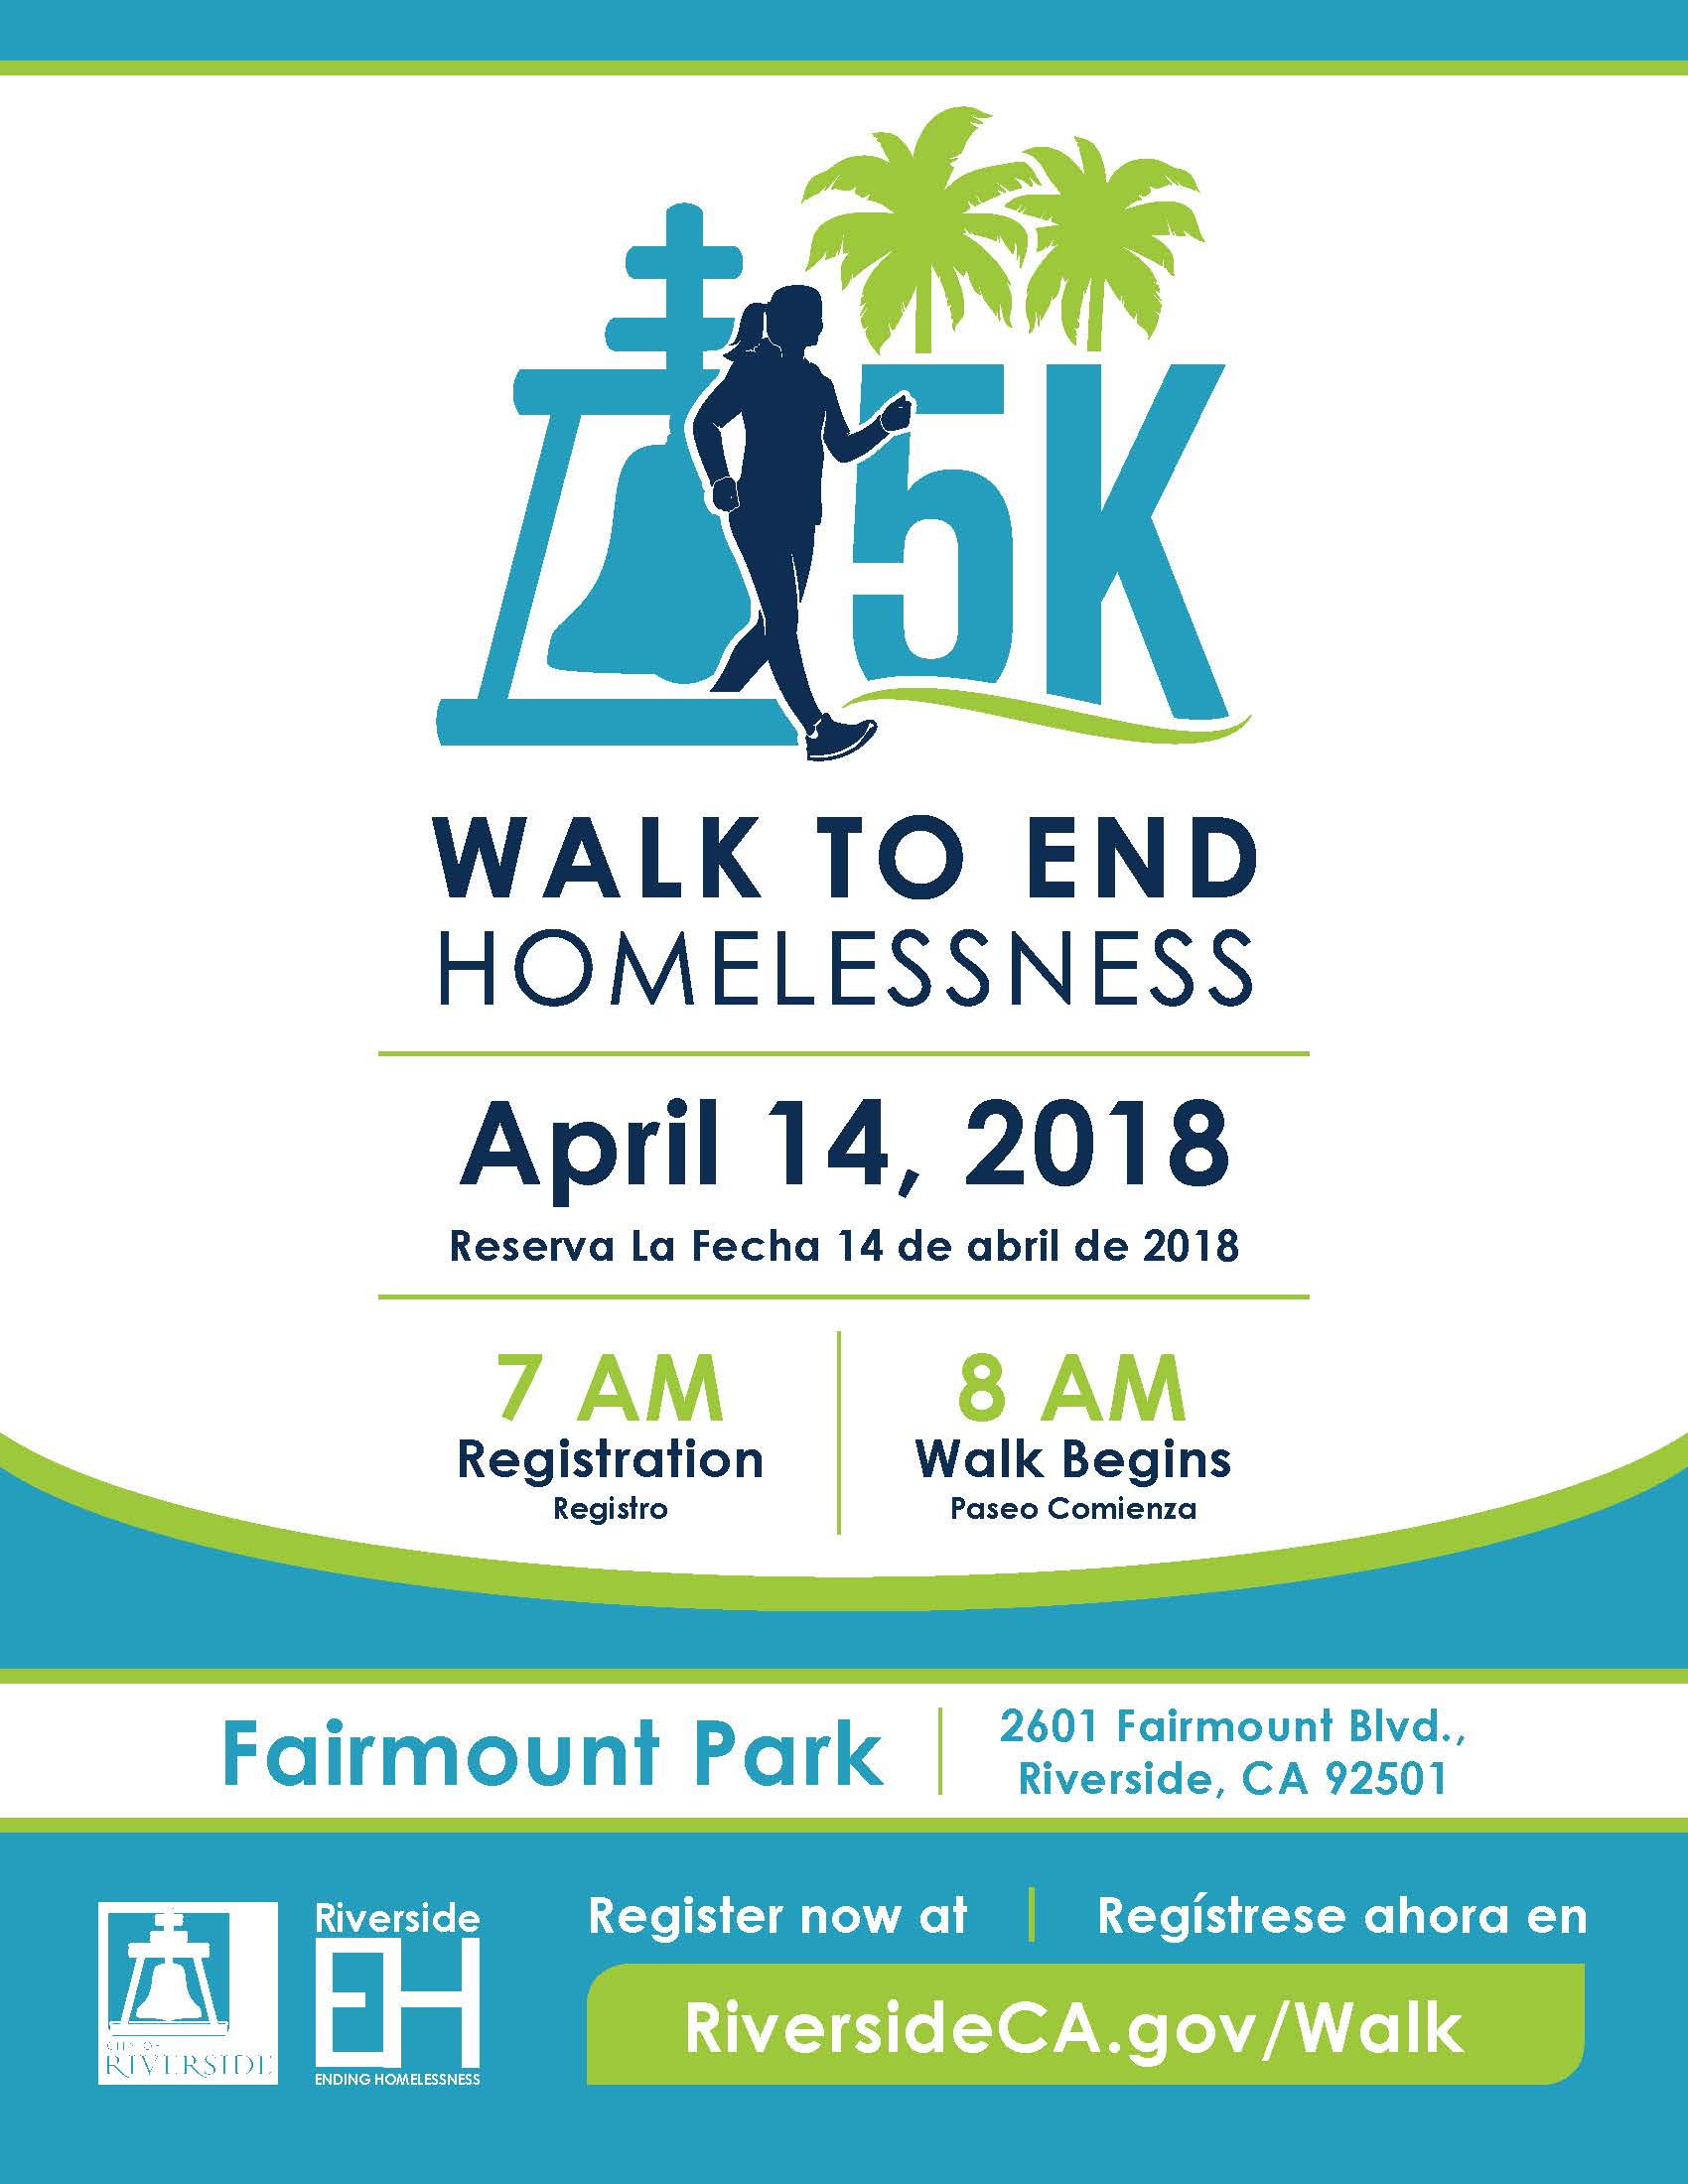 walk to end homelessness flyer, April 14, 2018 at Fairmount Park